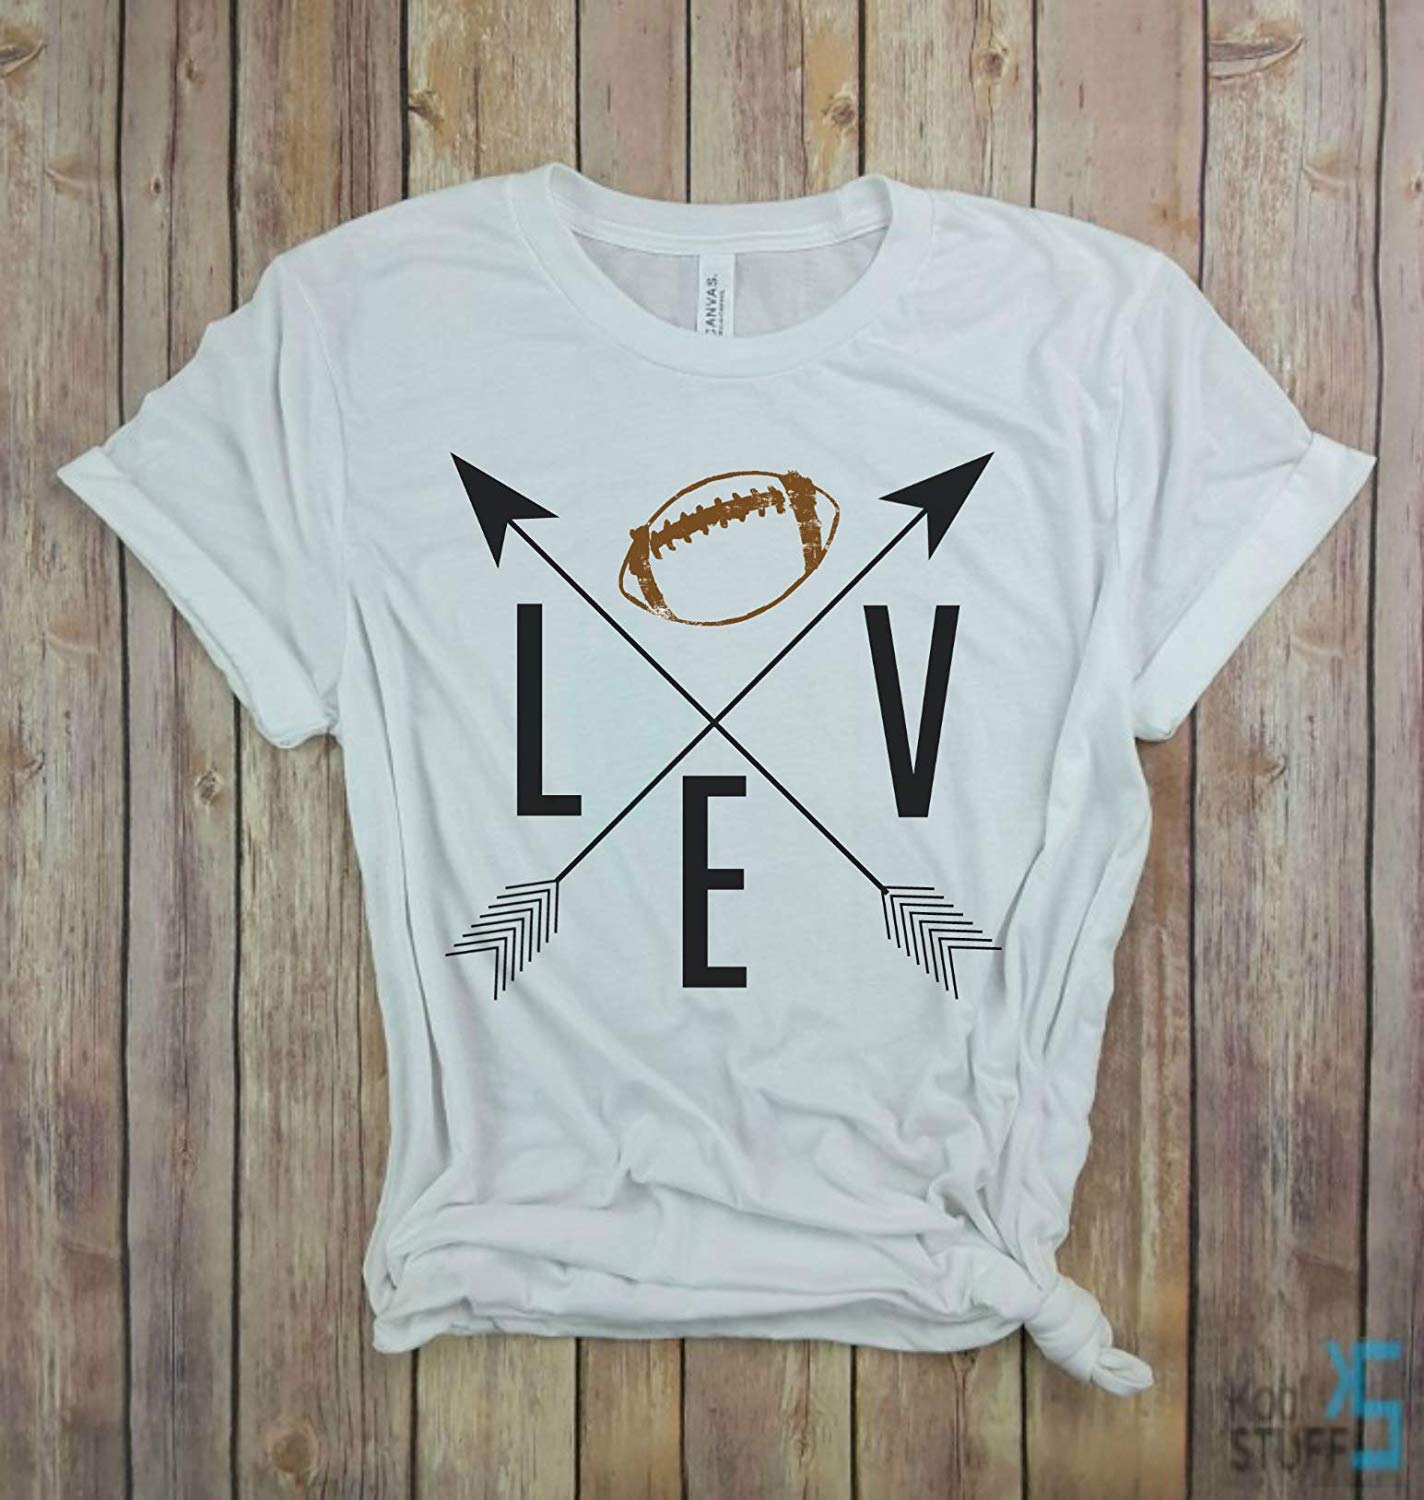 I love Football, Arrows Brown Ball, Game Day Shirt, Laces, Football Tshirt, Football Sunday Shirt, Football Season, Sunday Funday, sorority game day shirt